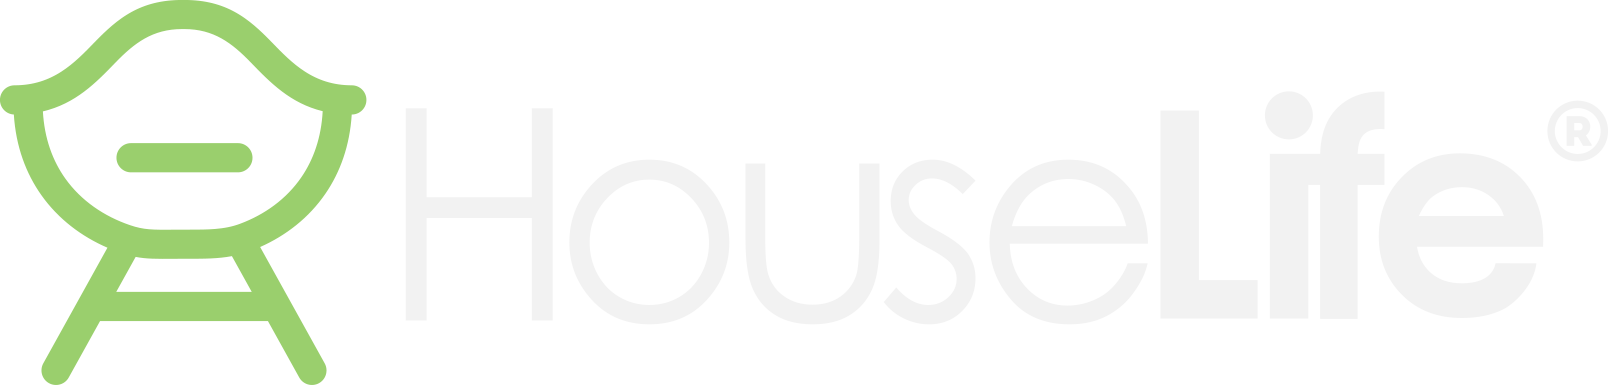 logo houselife